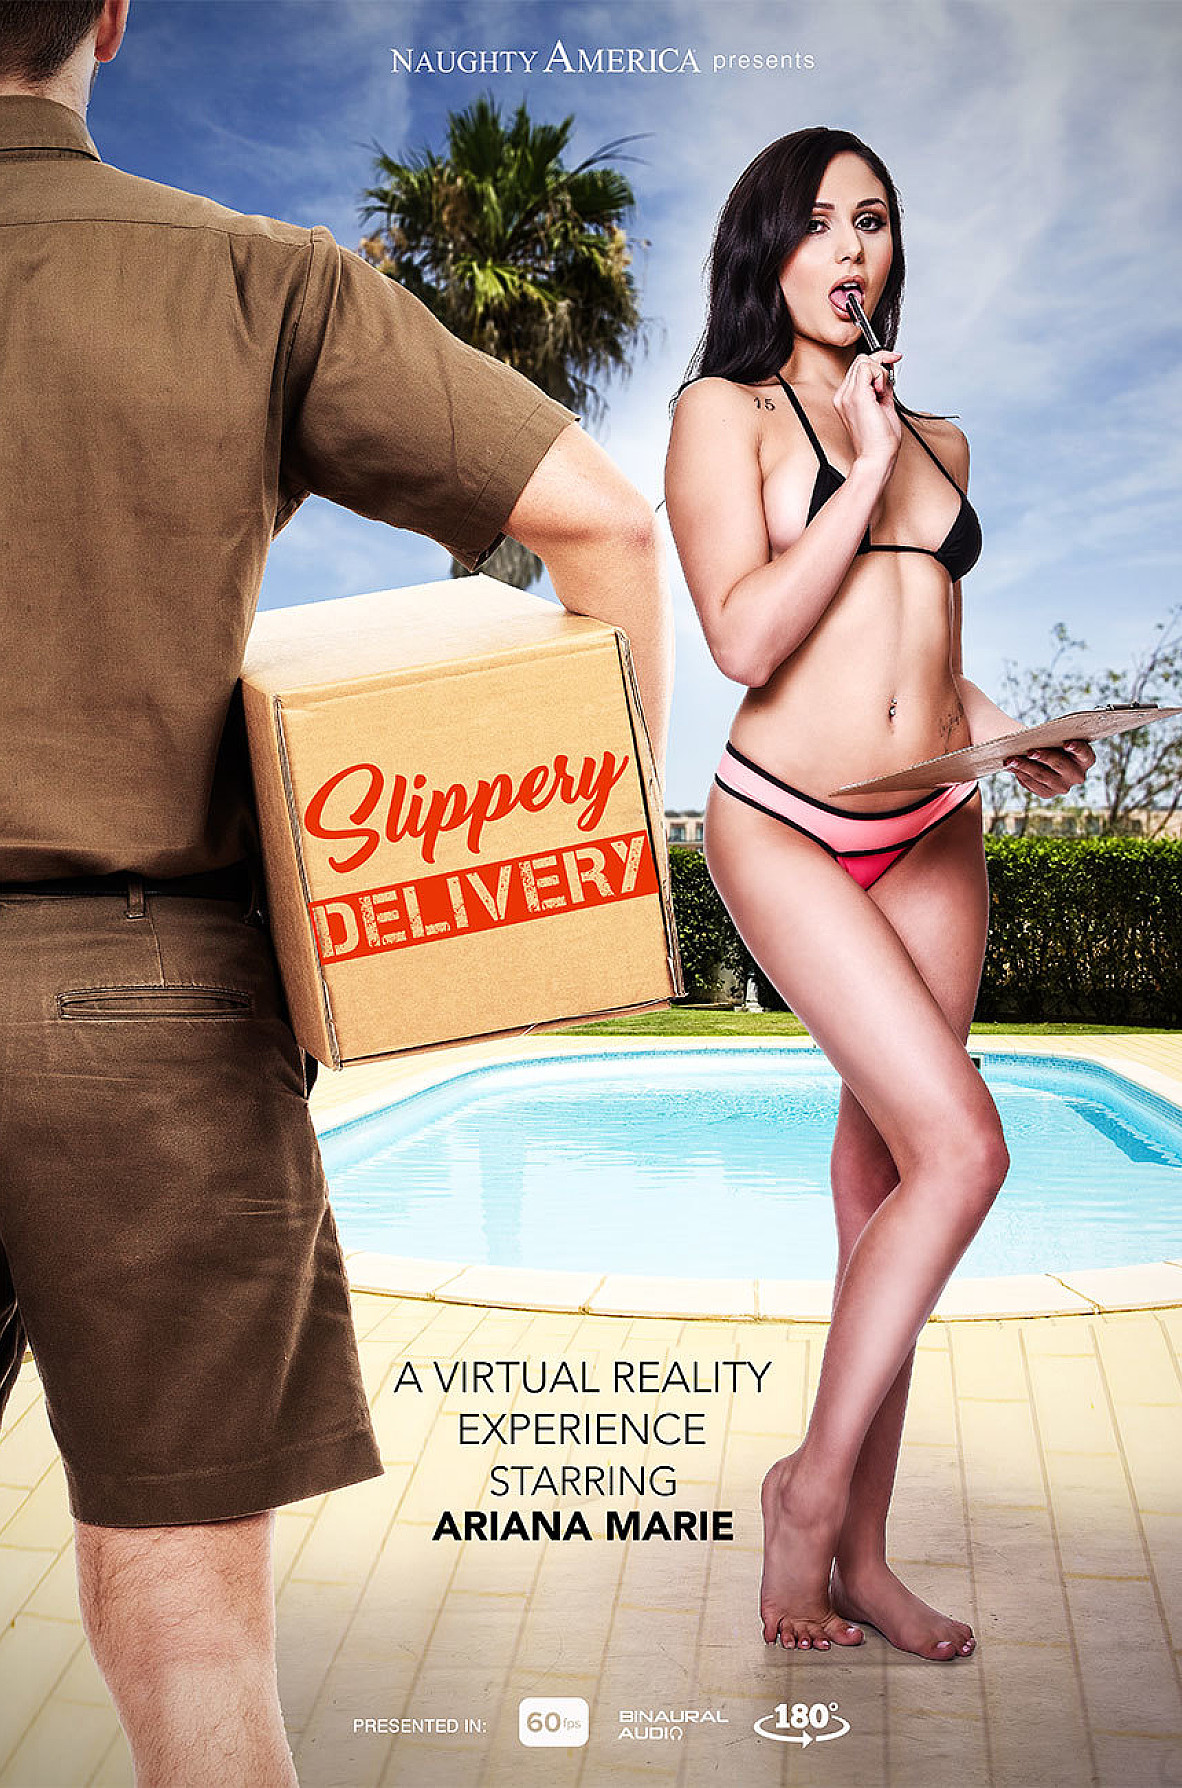 Watch Ariana Marie and Charles Dera VR video in Naughty America